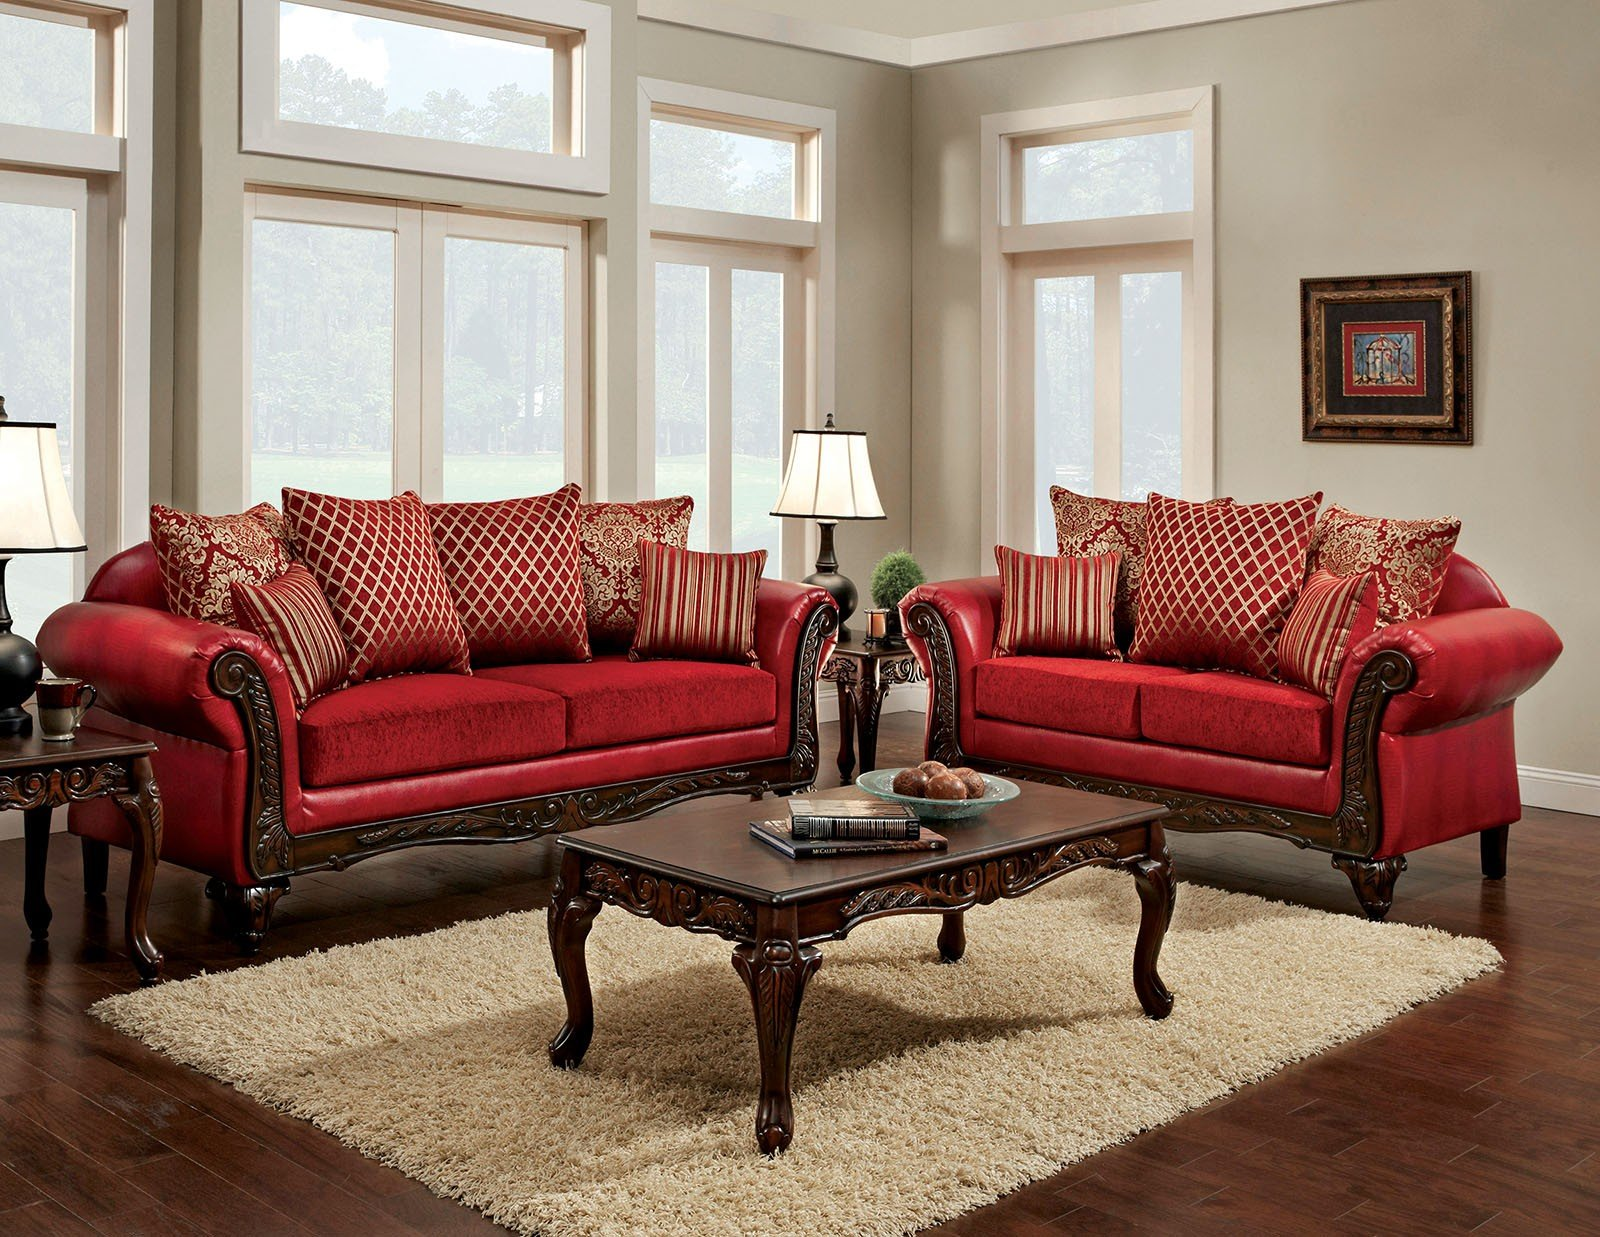 Furniture of America Marcus Red Living Room Set - Marcus Collection ...